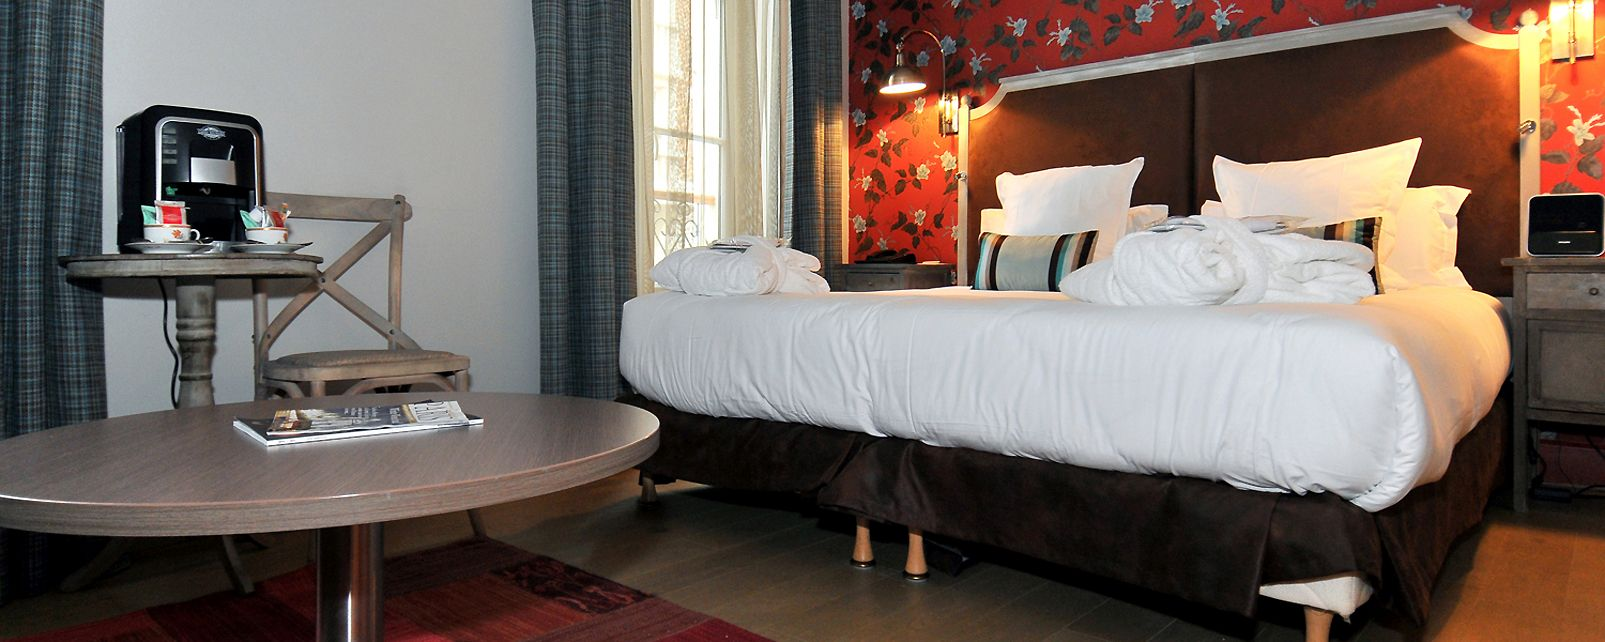 Hotel Le Robinet D Or In Paris